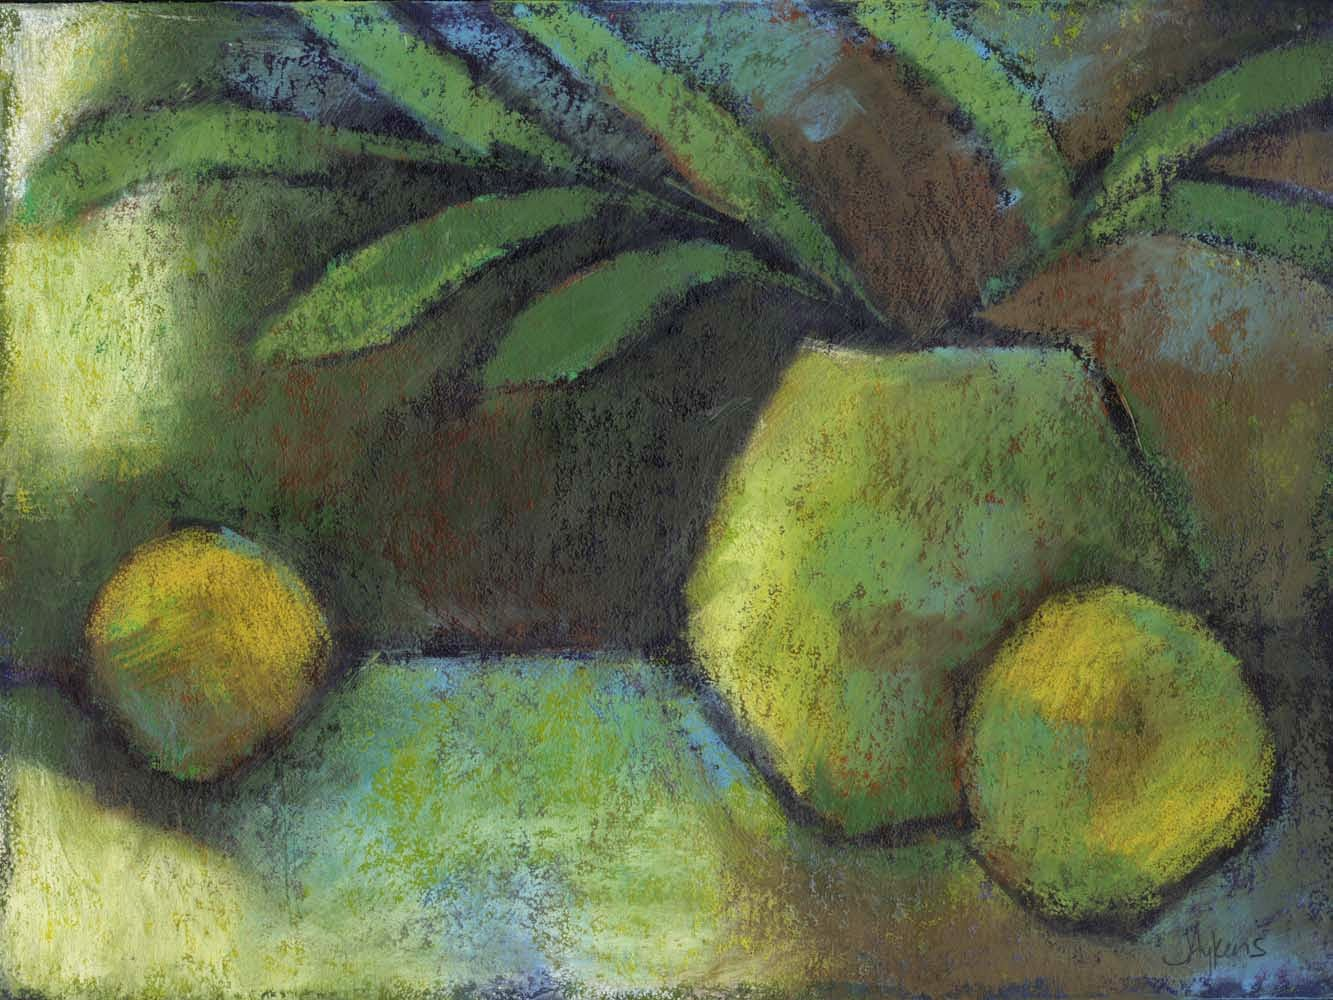 contemporary still life with yellow fruit oil on paper artist janine aykens potted plant blue yellow color scheme moody post impressionist